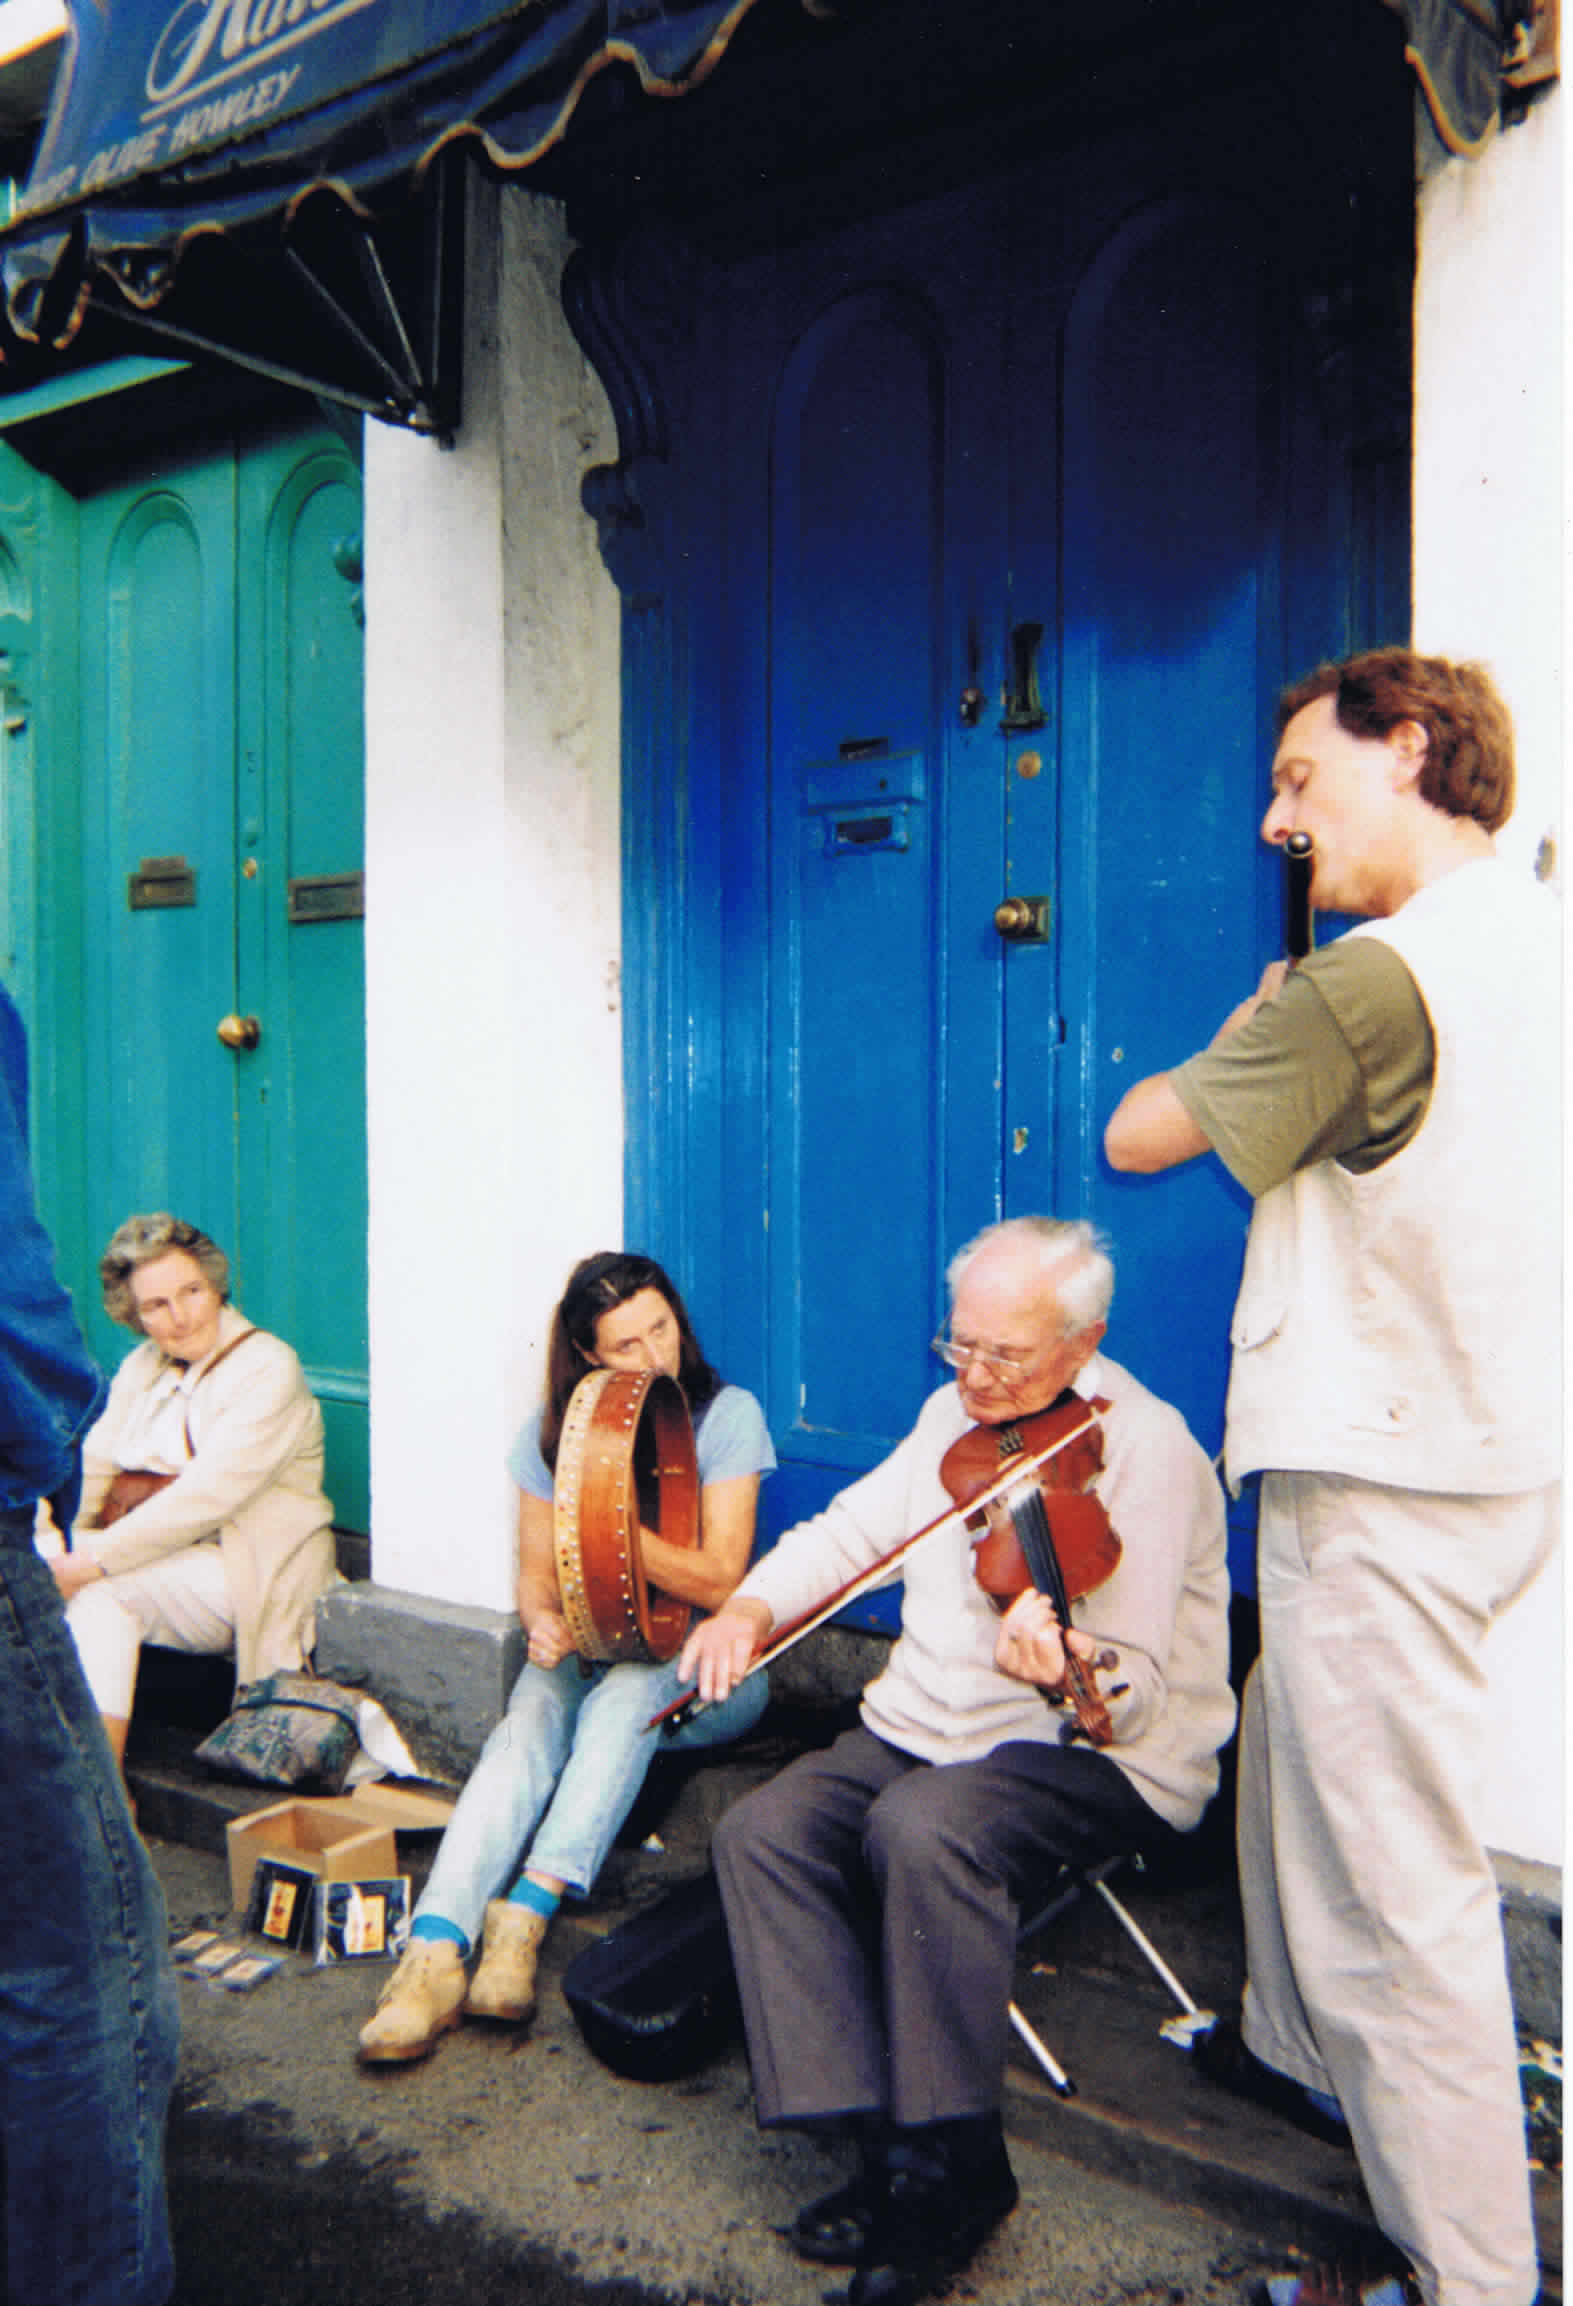 Sean, Kevin and Irene at a street session in the Fleadh Ceoil Ballina, 1997